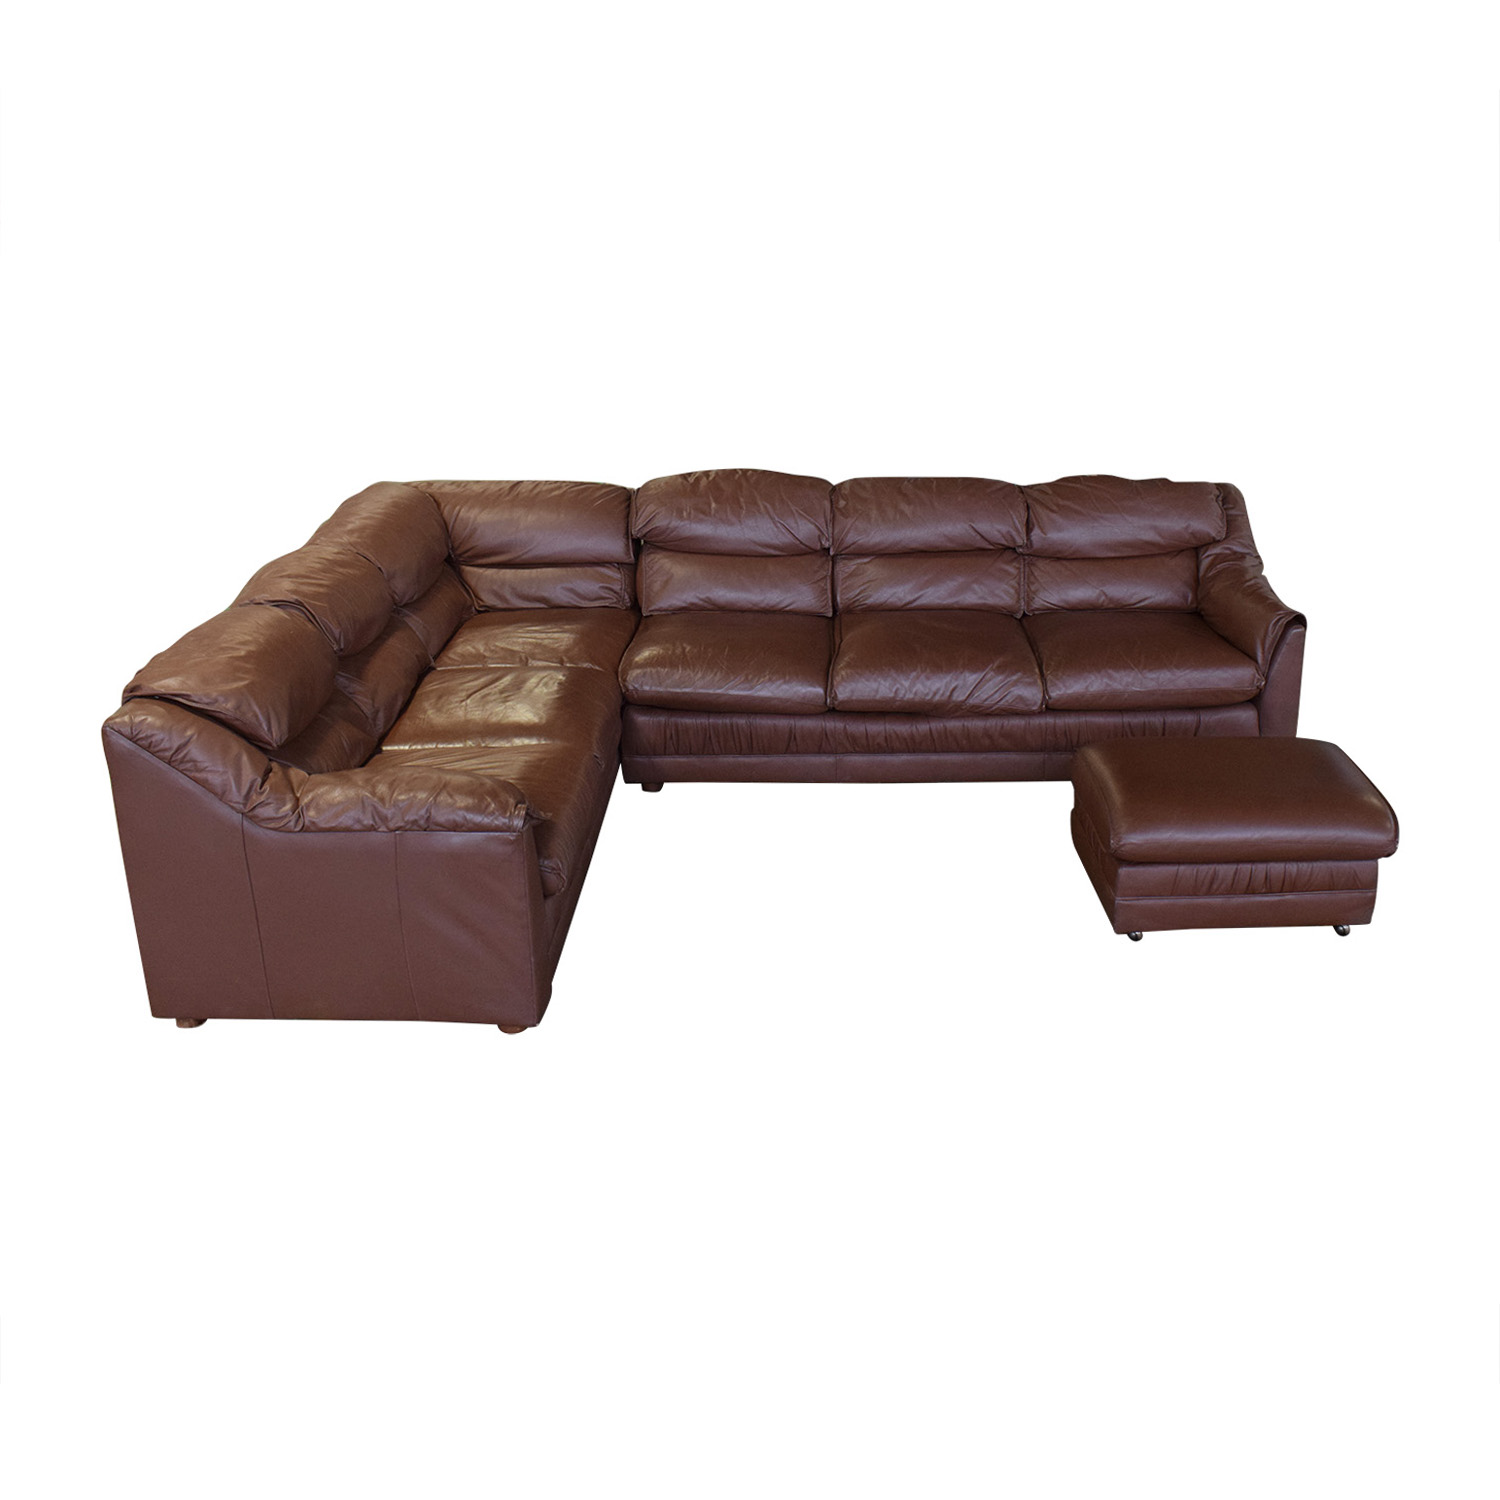 Emerson Leather Emerson Leather Sectional Sofa and Ottoman used